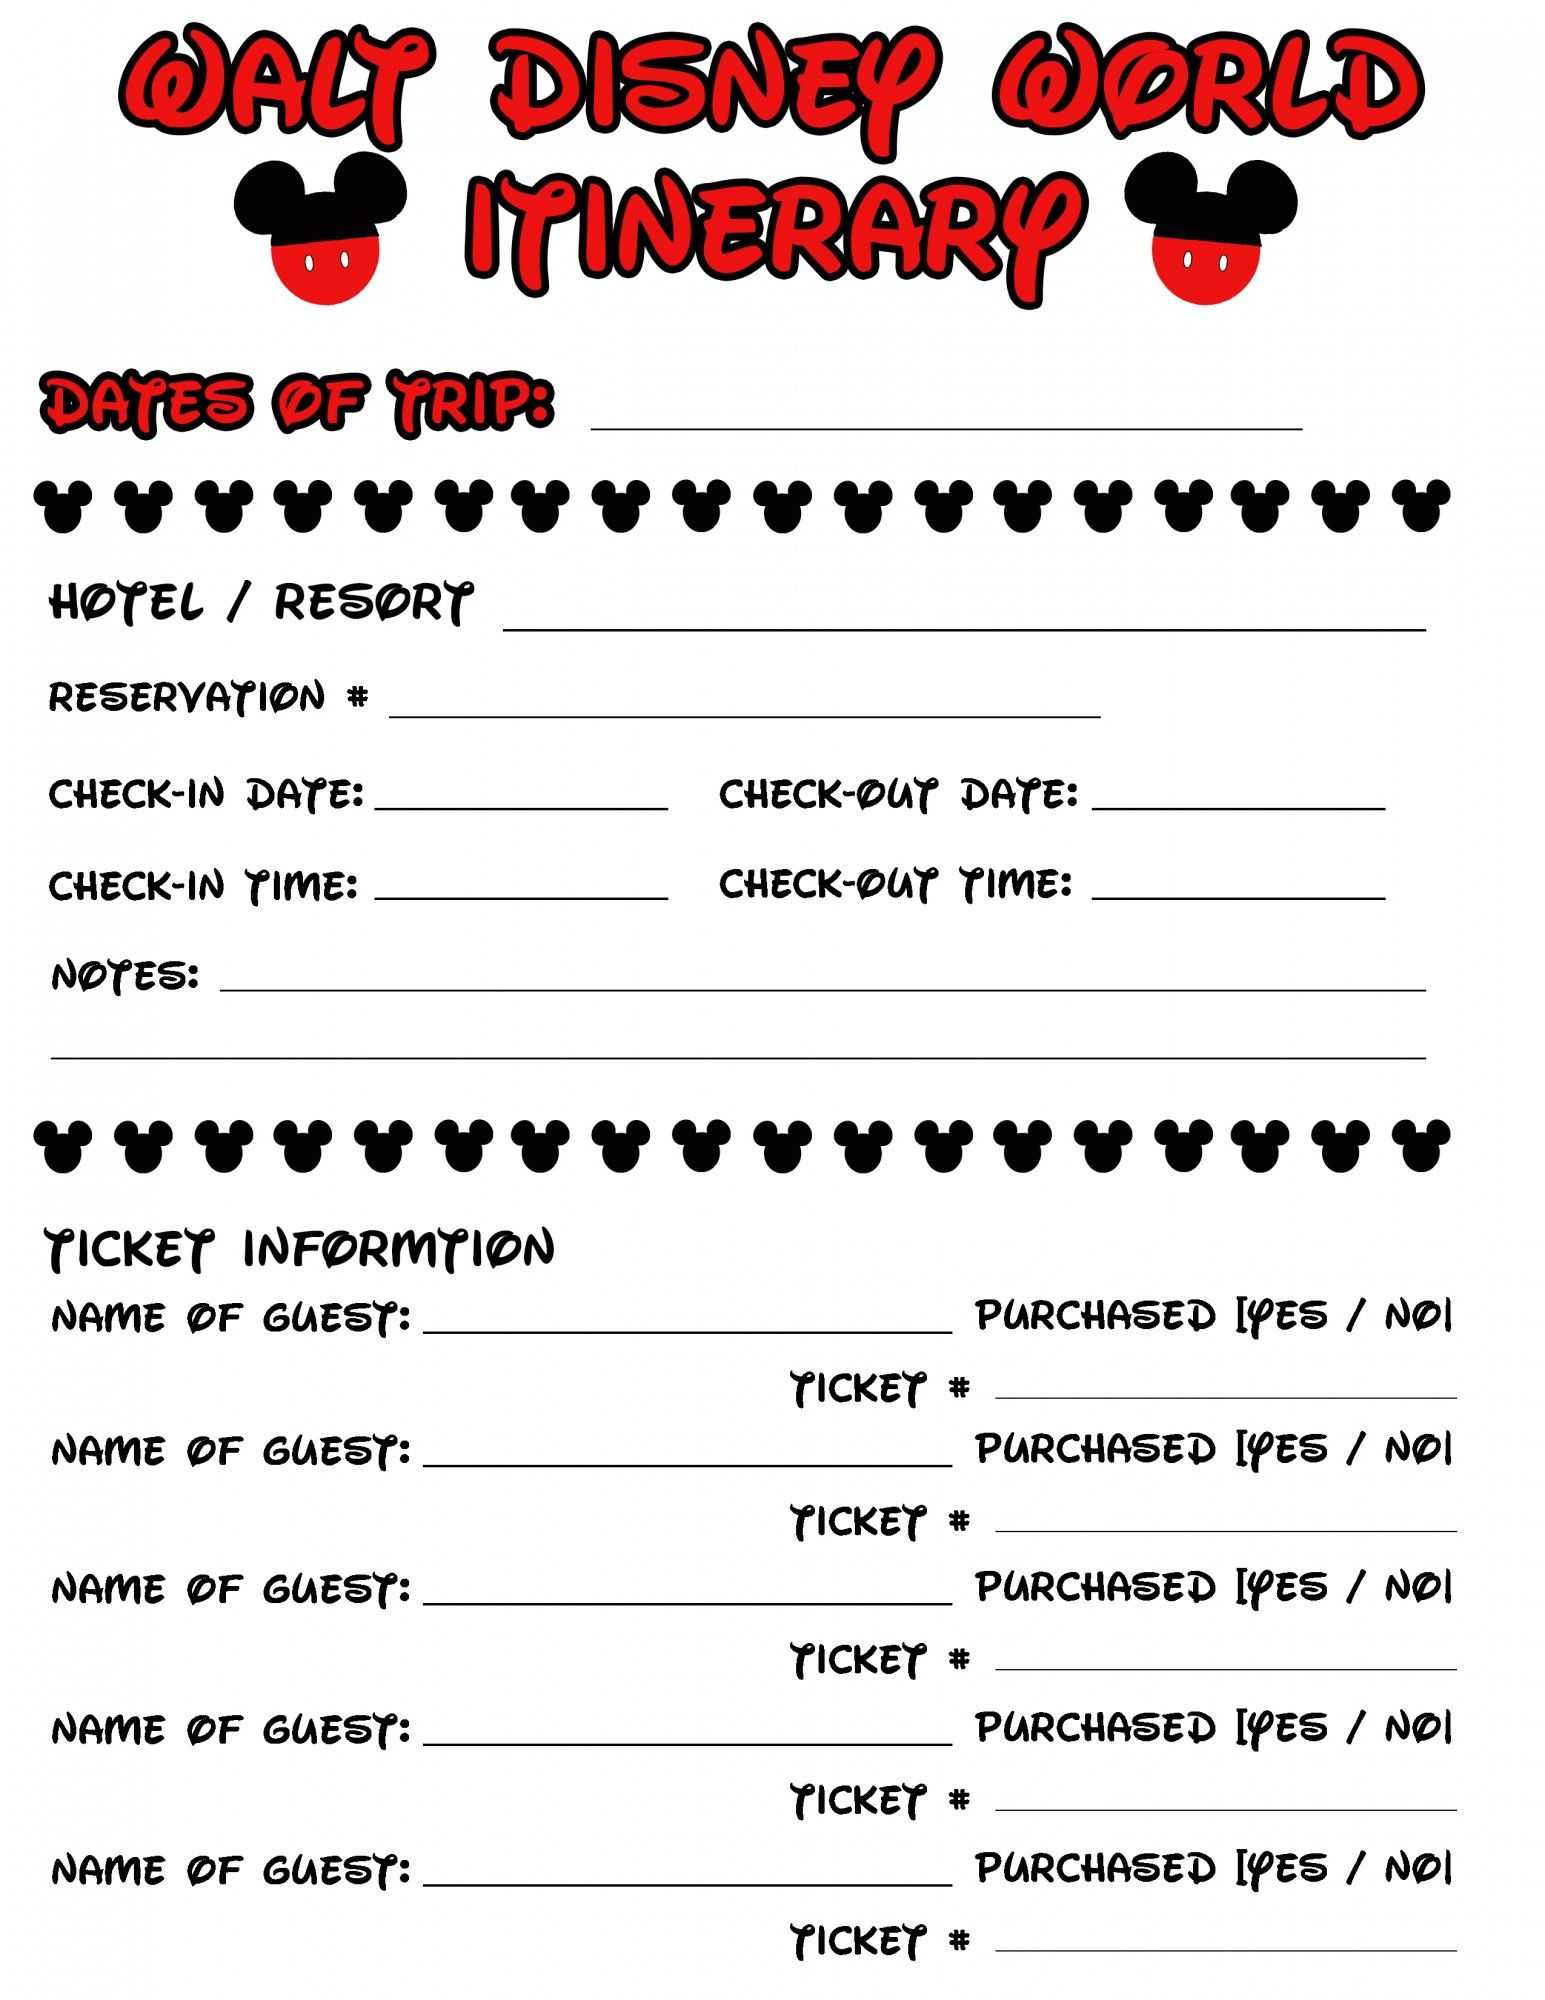 Disney Agenda Amp Itinerary Free Printable With Images